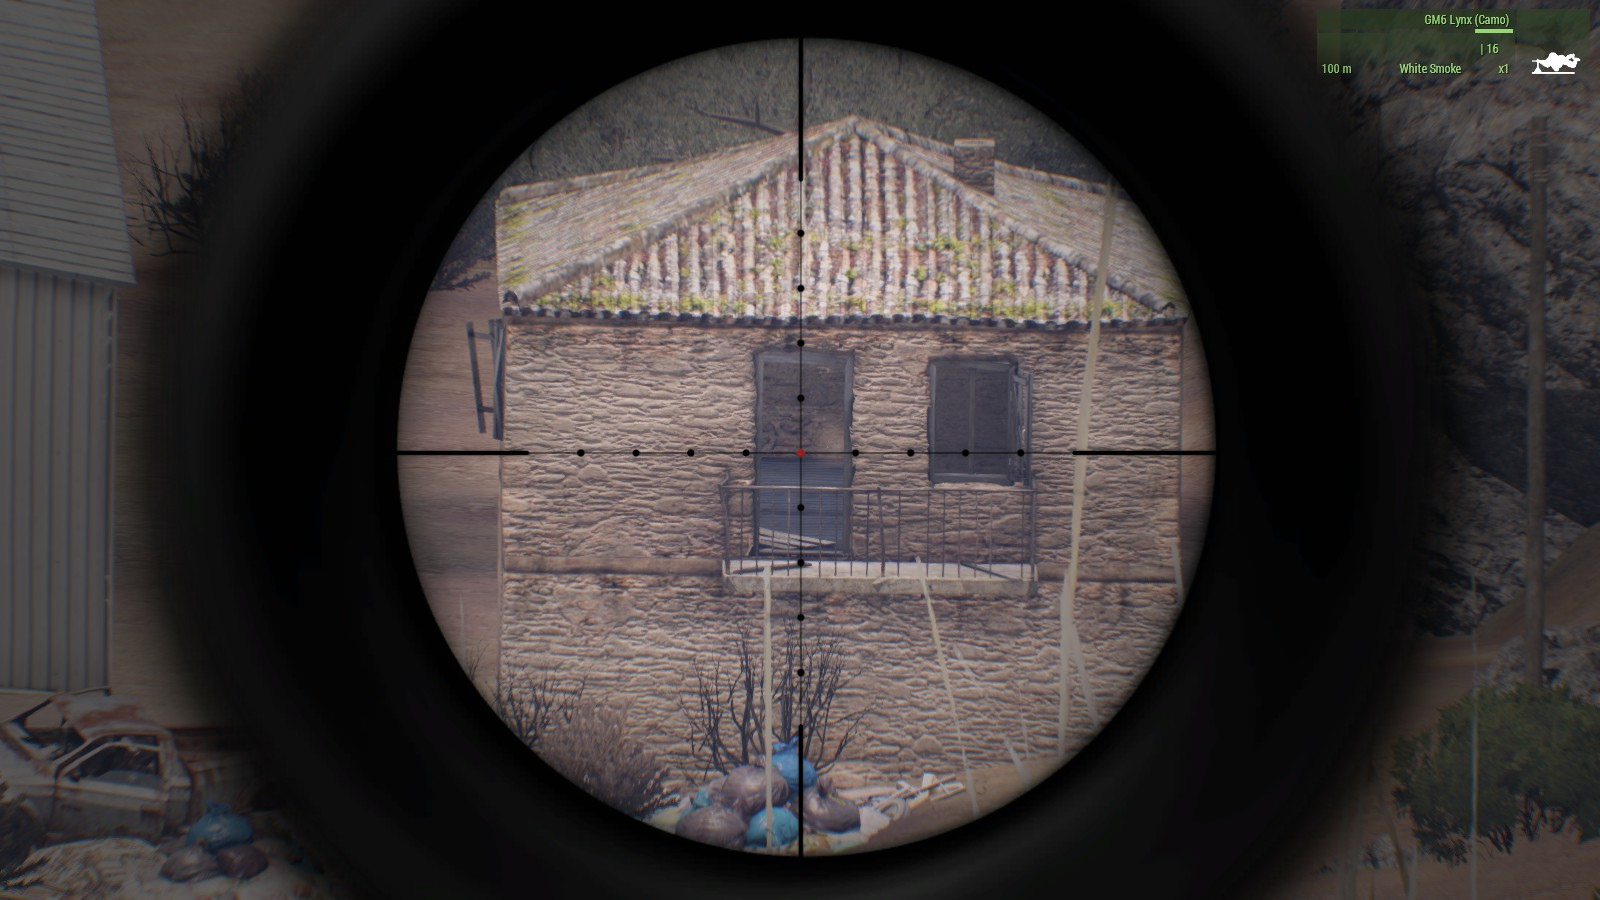 My shot was only slightly off at 651 meters.